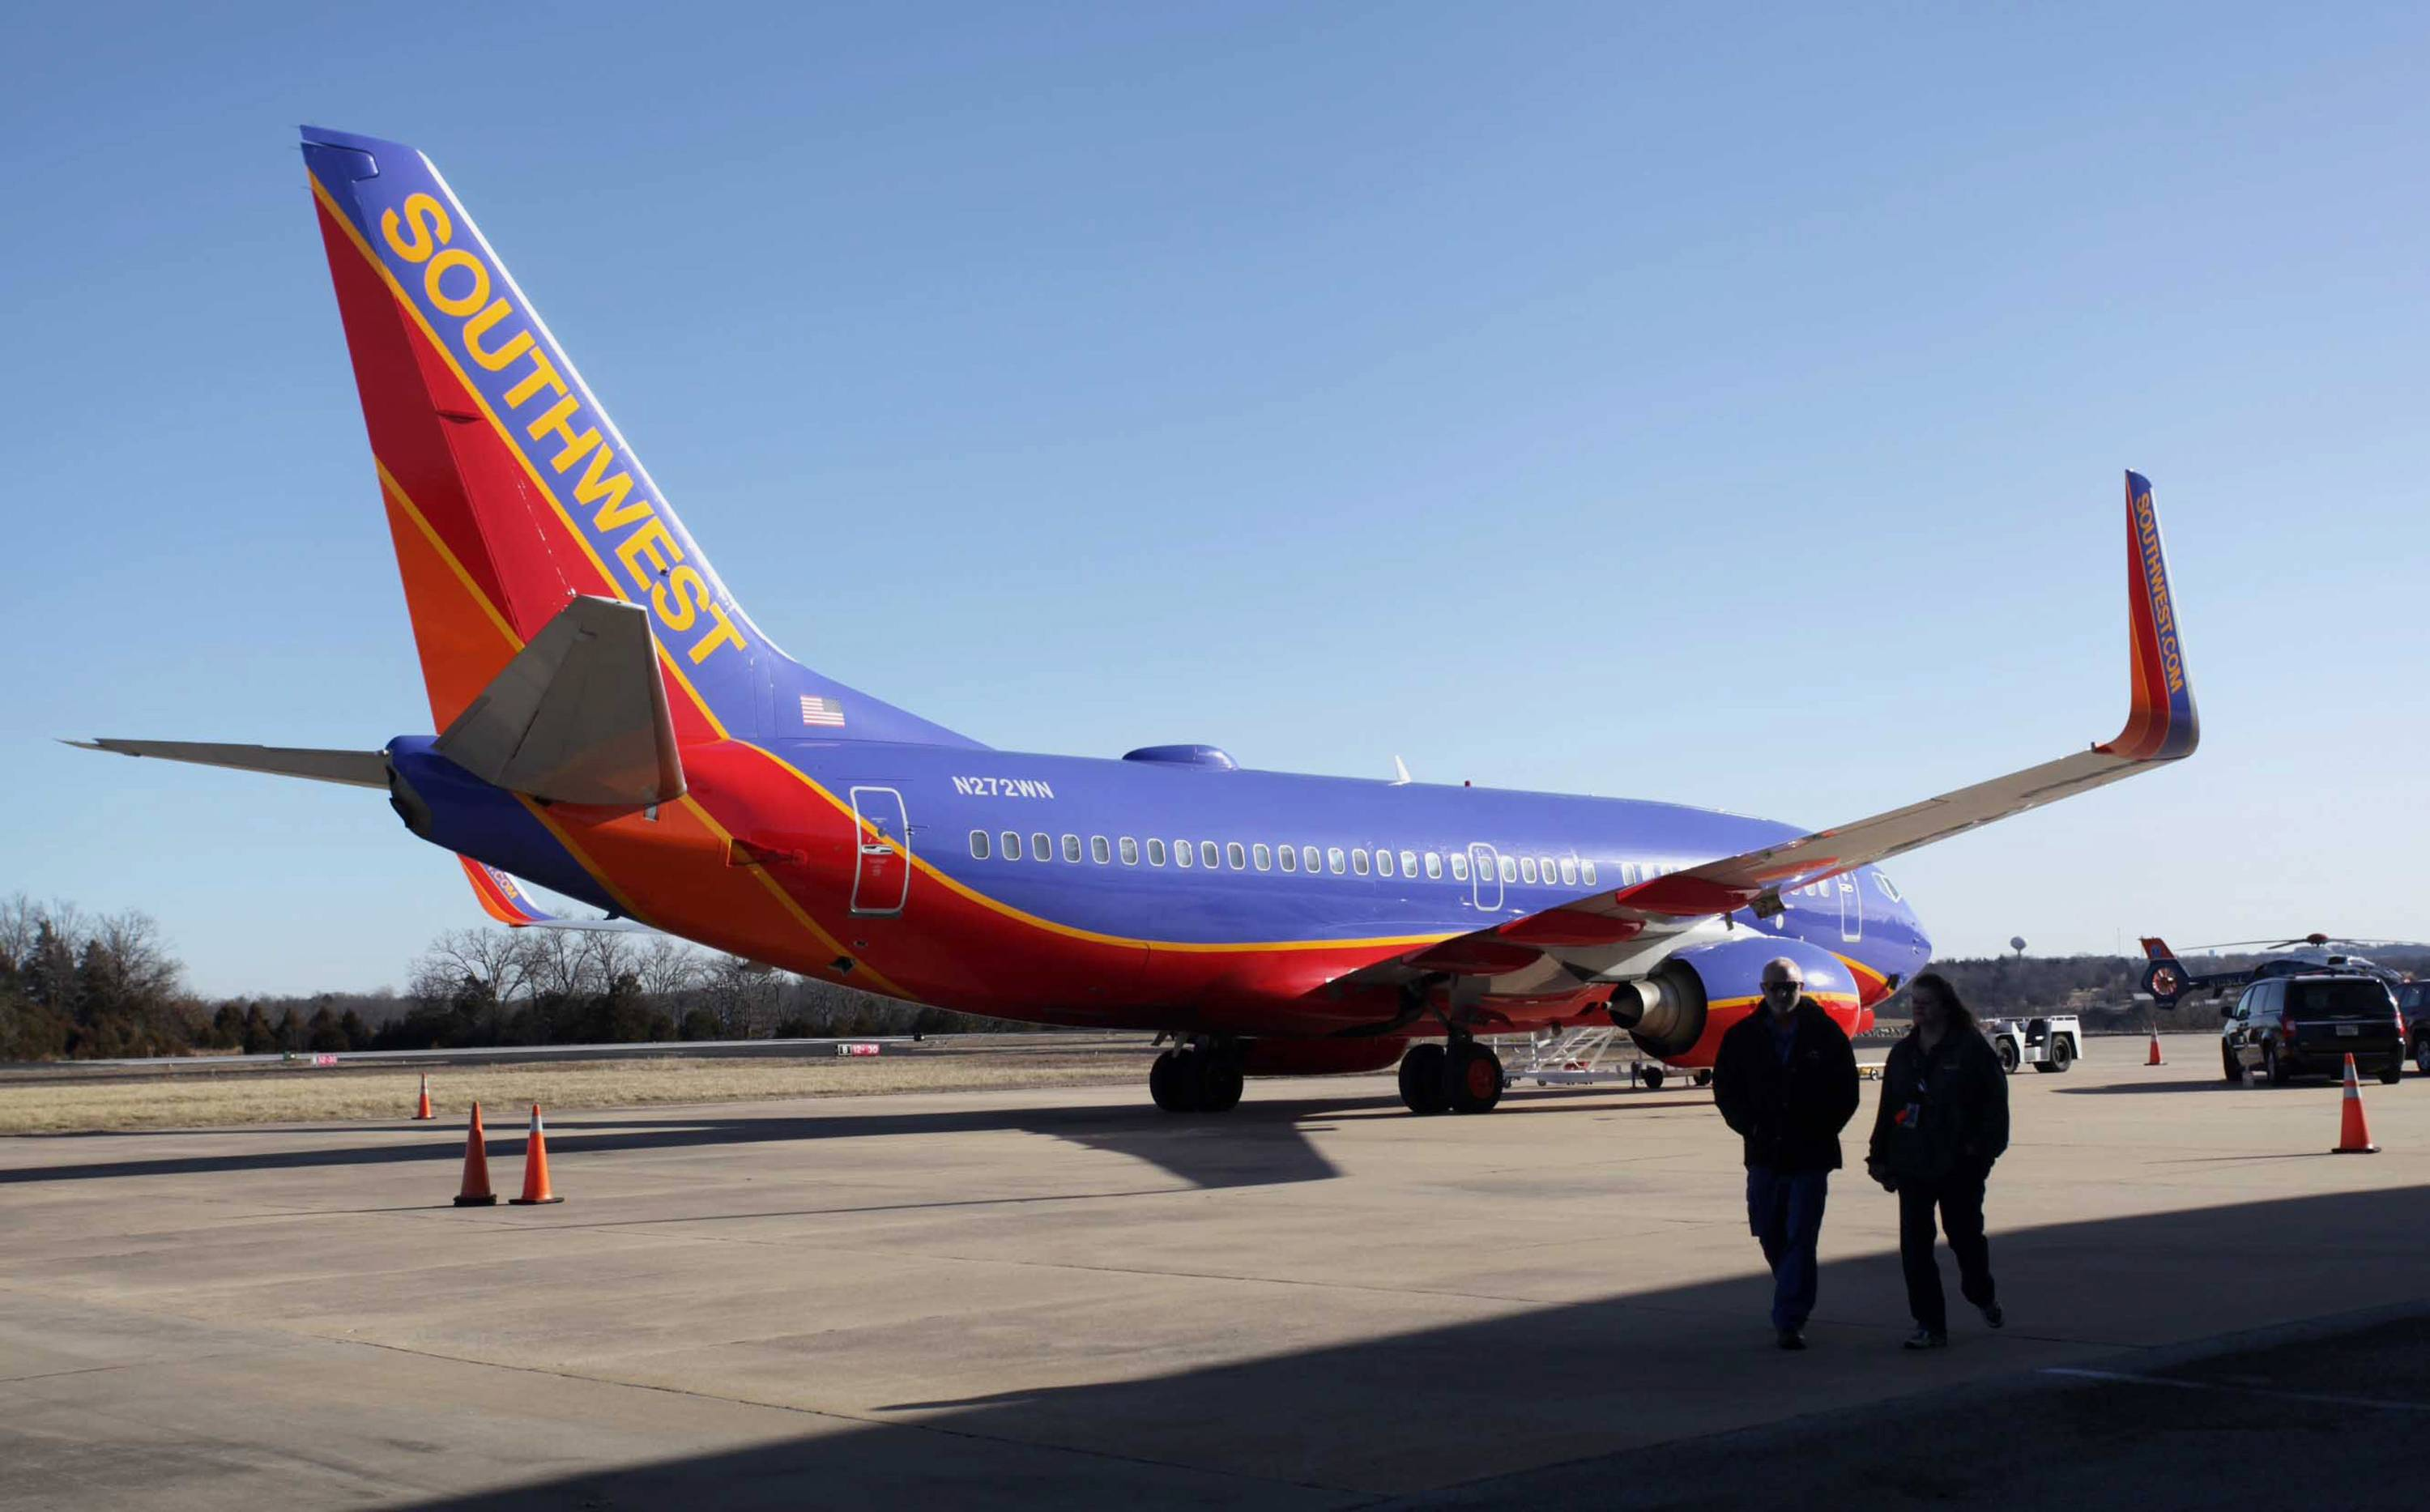 Southwest Airlines Flight 4013 sits at the M. Graham Clark Downtown Airport in Hollister, Mo., in this Jan. 13, 2014 file photo. On nearly 150 flights, U.S. commercial air carriers have either landed at the wrong airport or started to land and realized their mistake in time, according to a search by The Associated Press of government safety databases and media reports since the early 1990s.